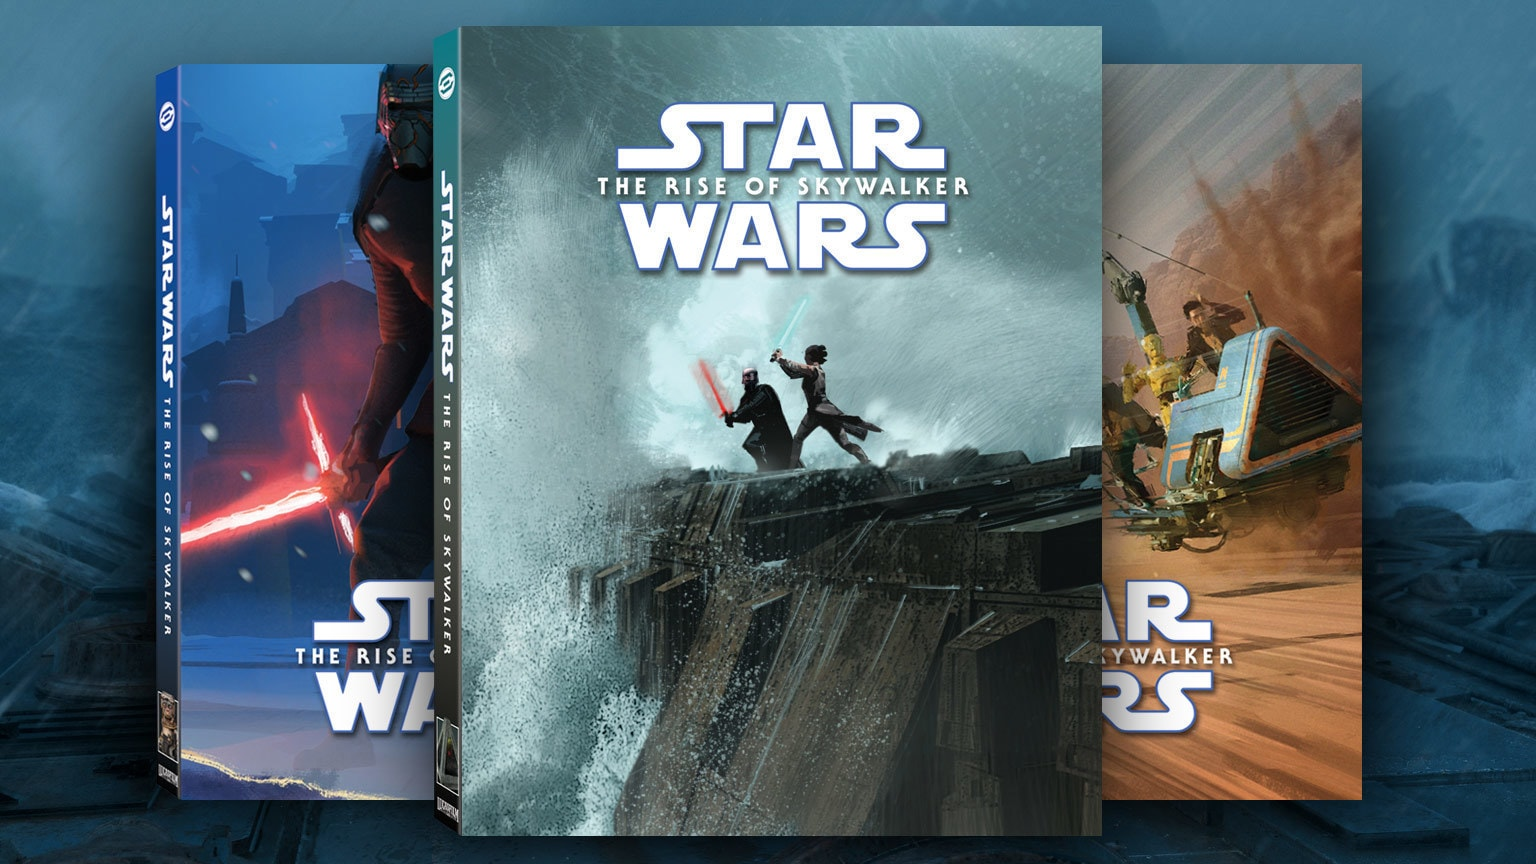 The Rise of Skywalker alt covers